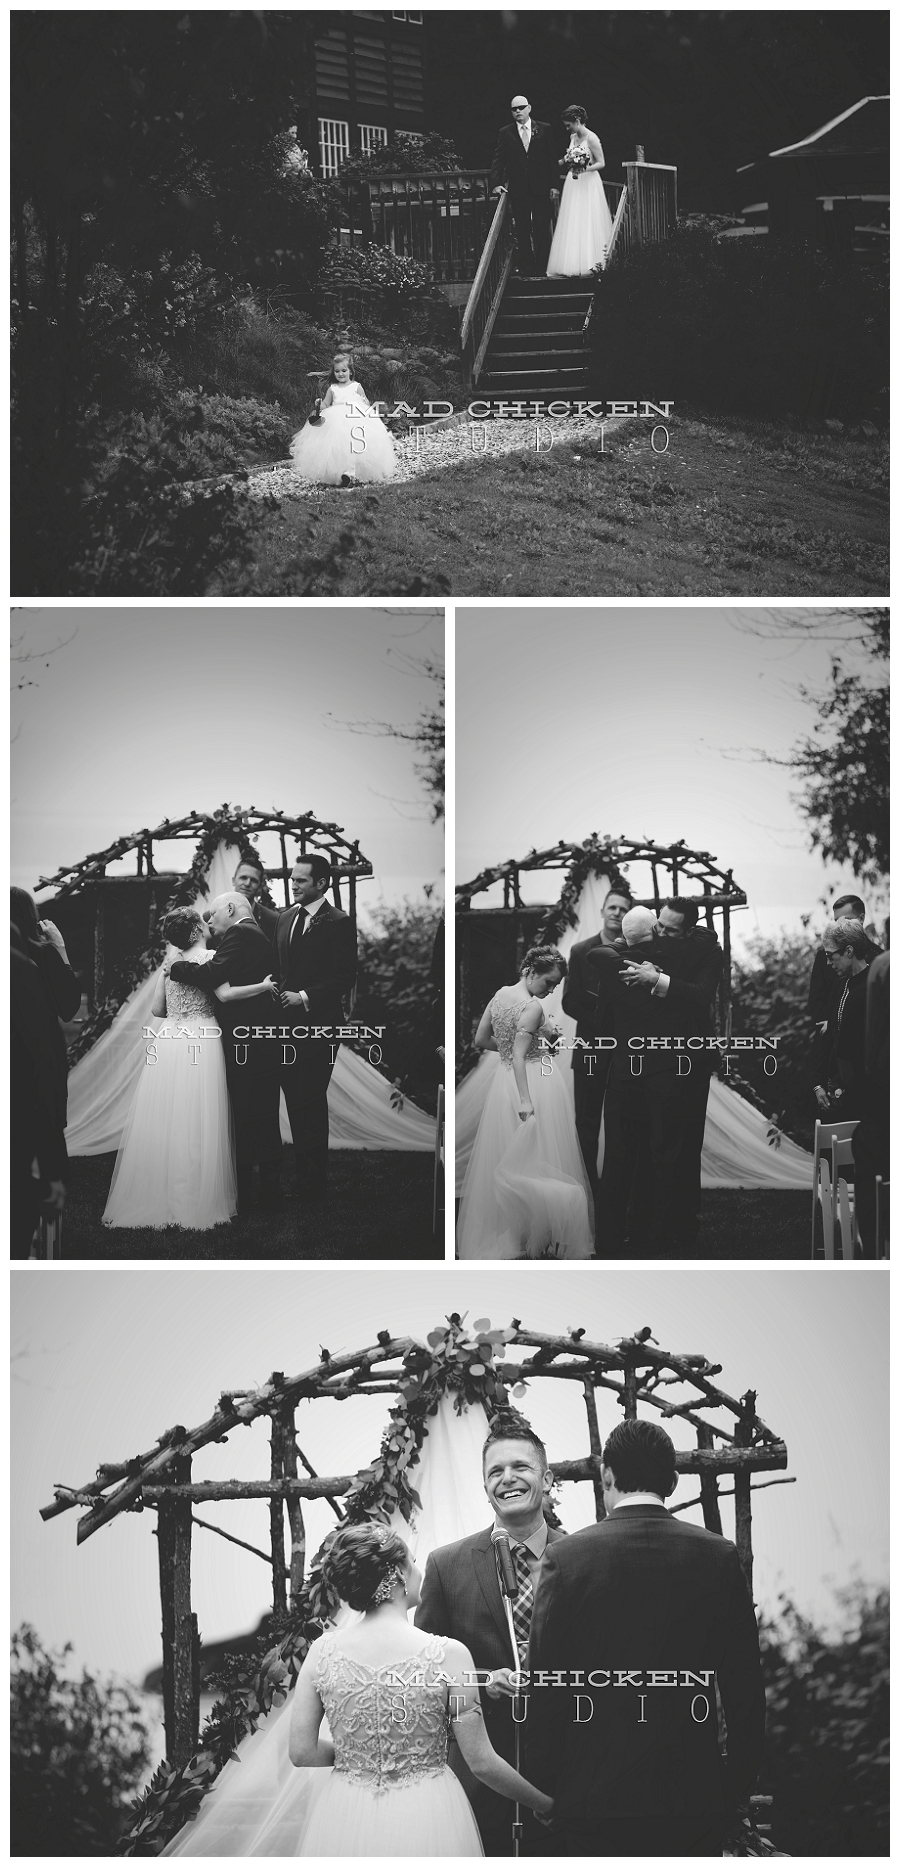 23 duluth wedding photography by mad chicken studio photographing a wedding ceremony at lutsen resort.jpg